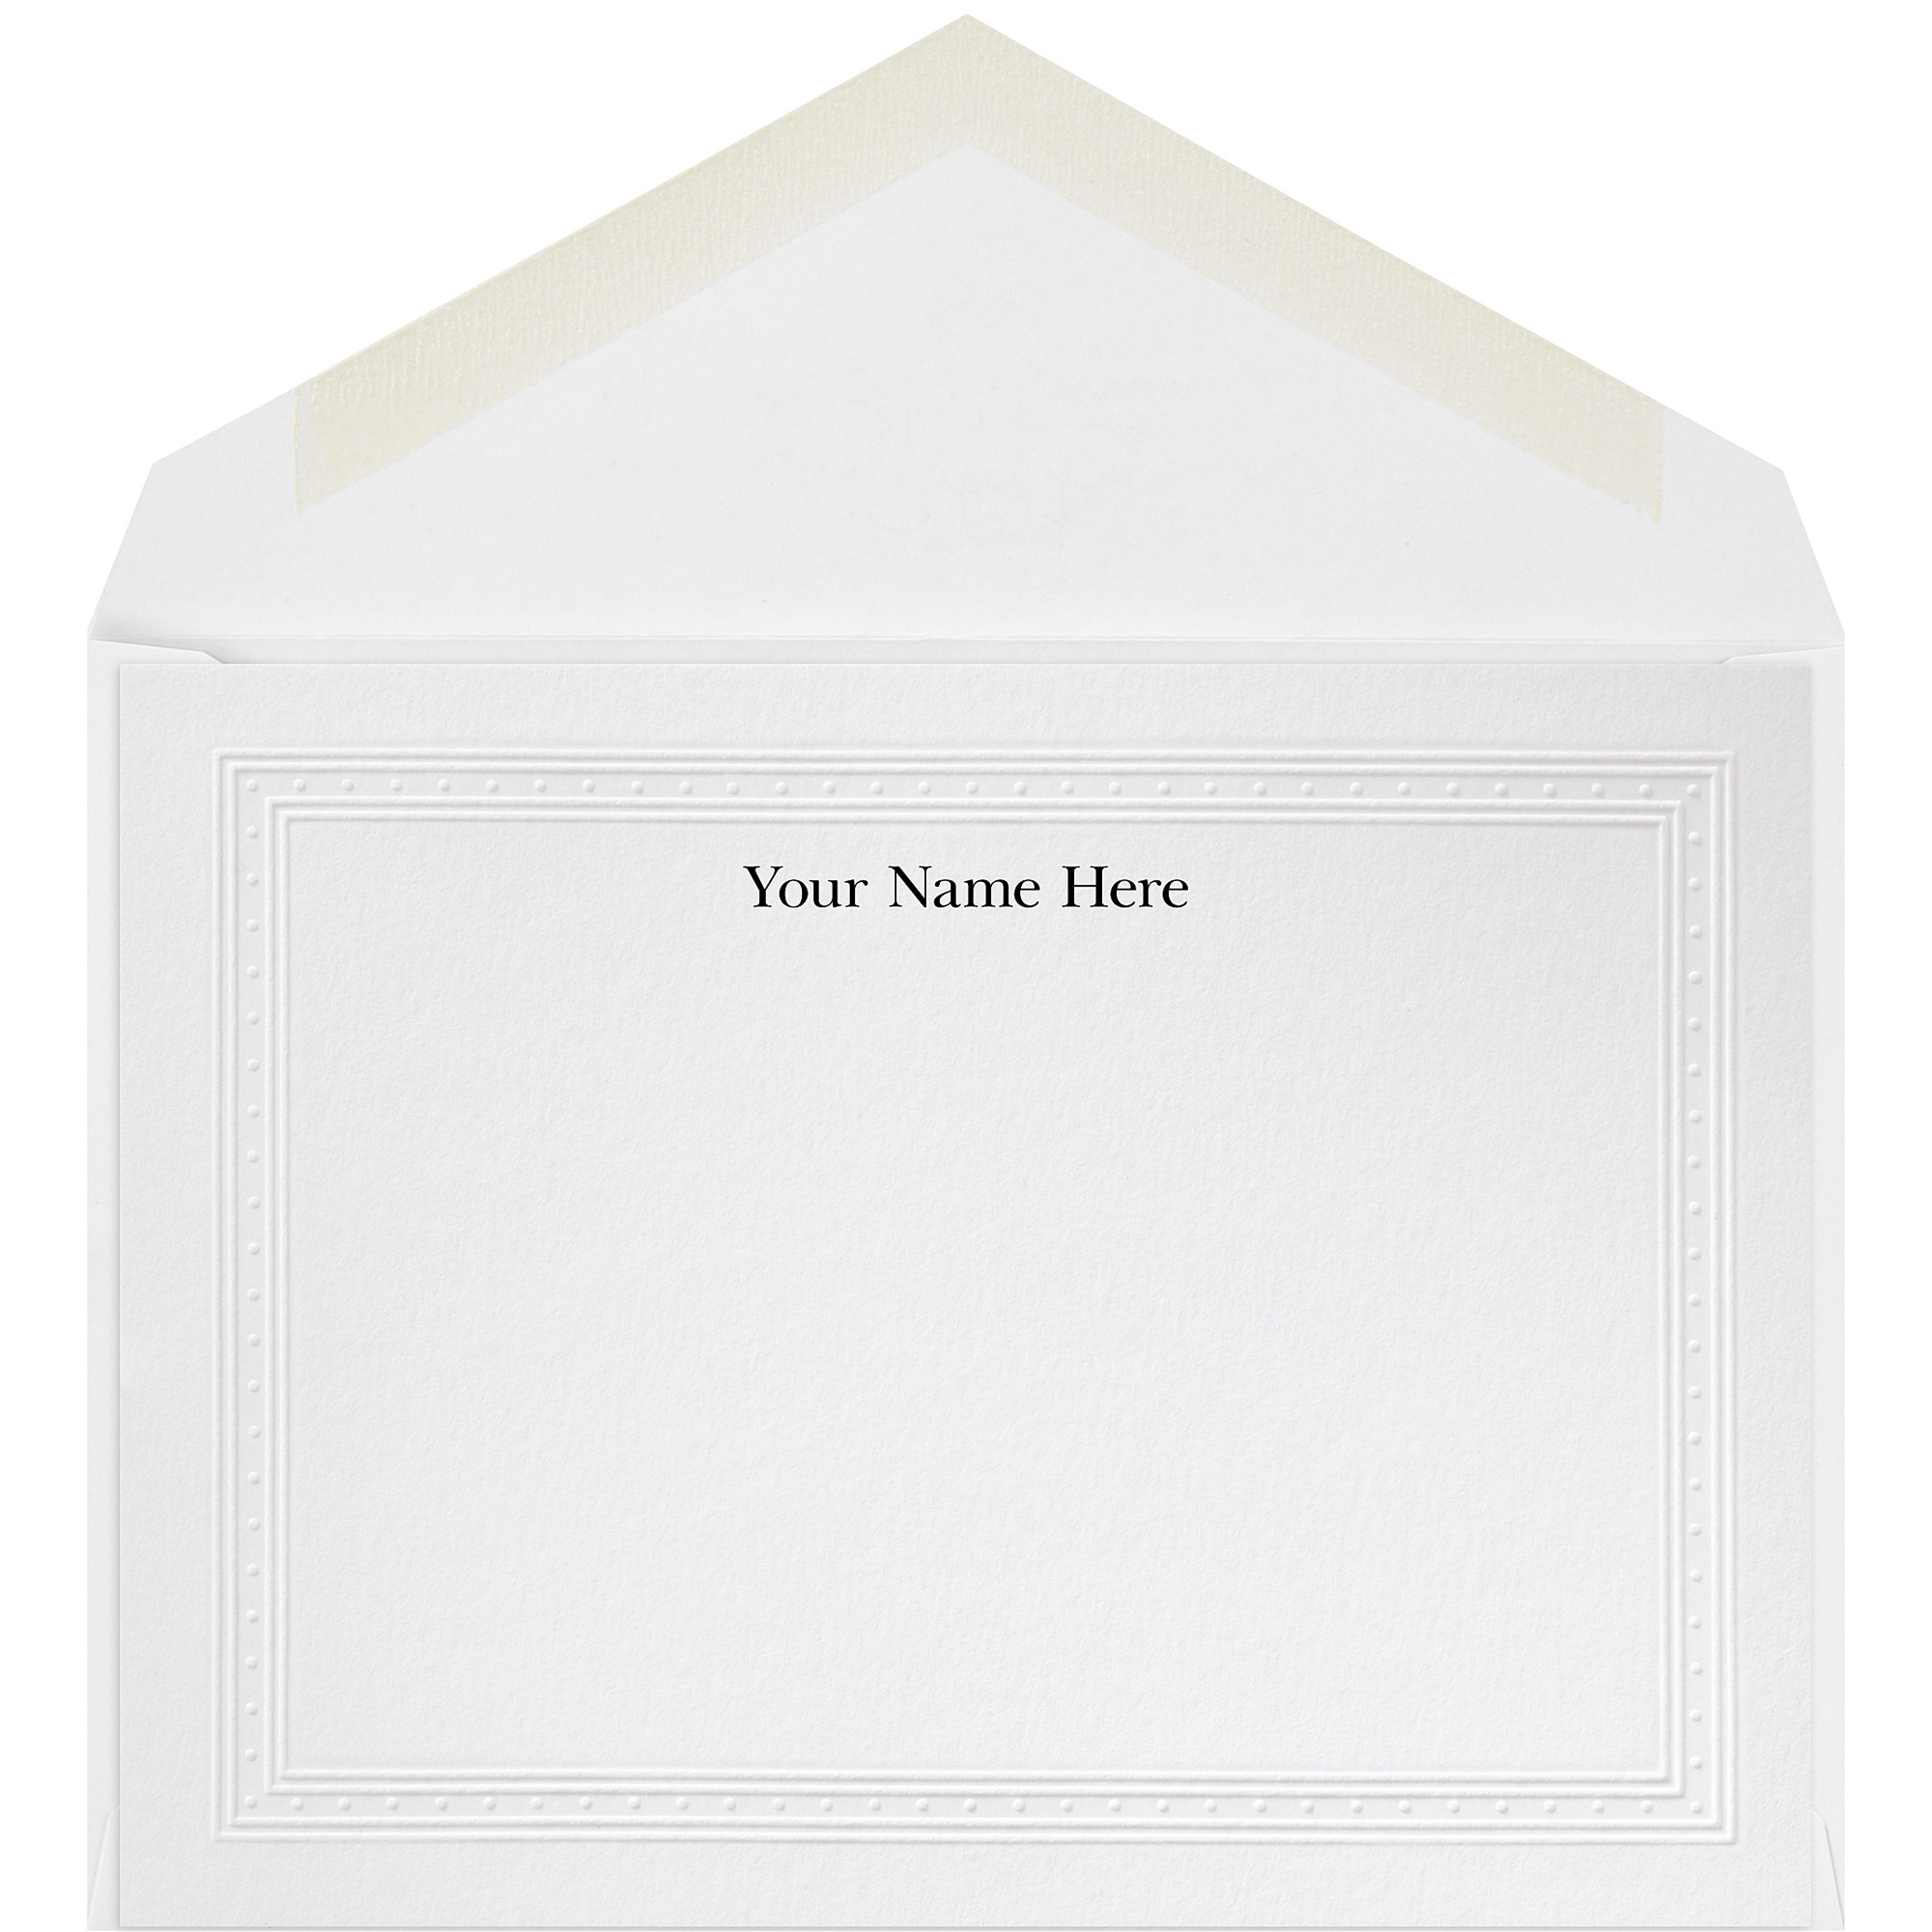 "The Occasions Group Stationery Note Cards, 4 1/2"" x 6 1/4""W, Flat, Embossed Dot Border, White Matte, Box Of 25"